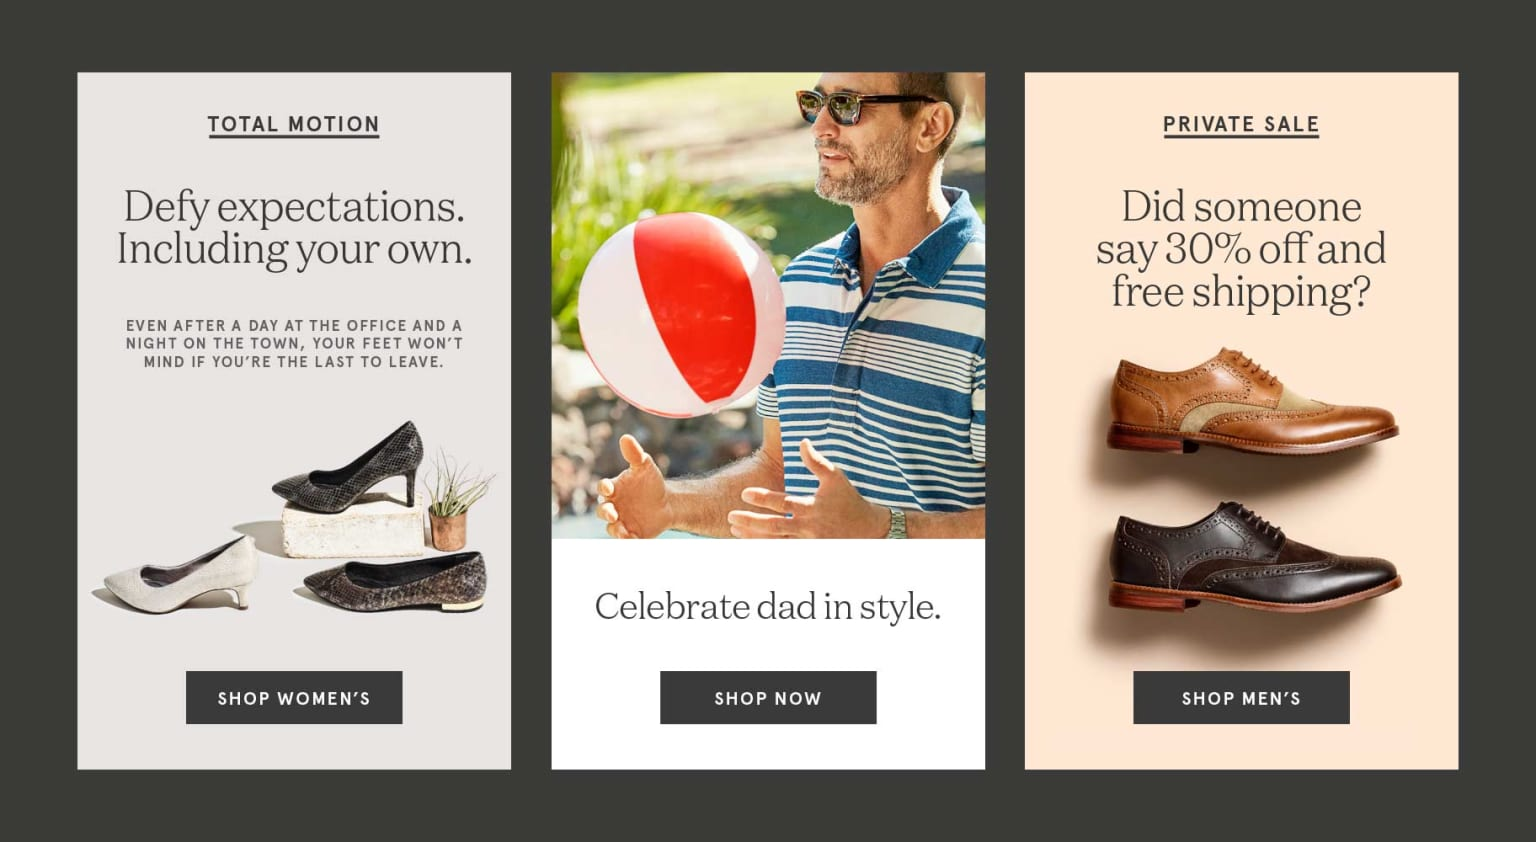 Rockport - Brand Extension & Advertising